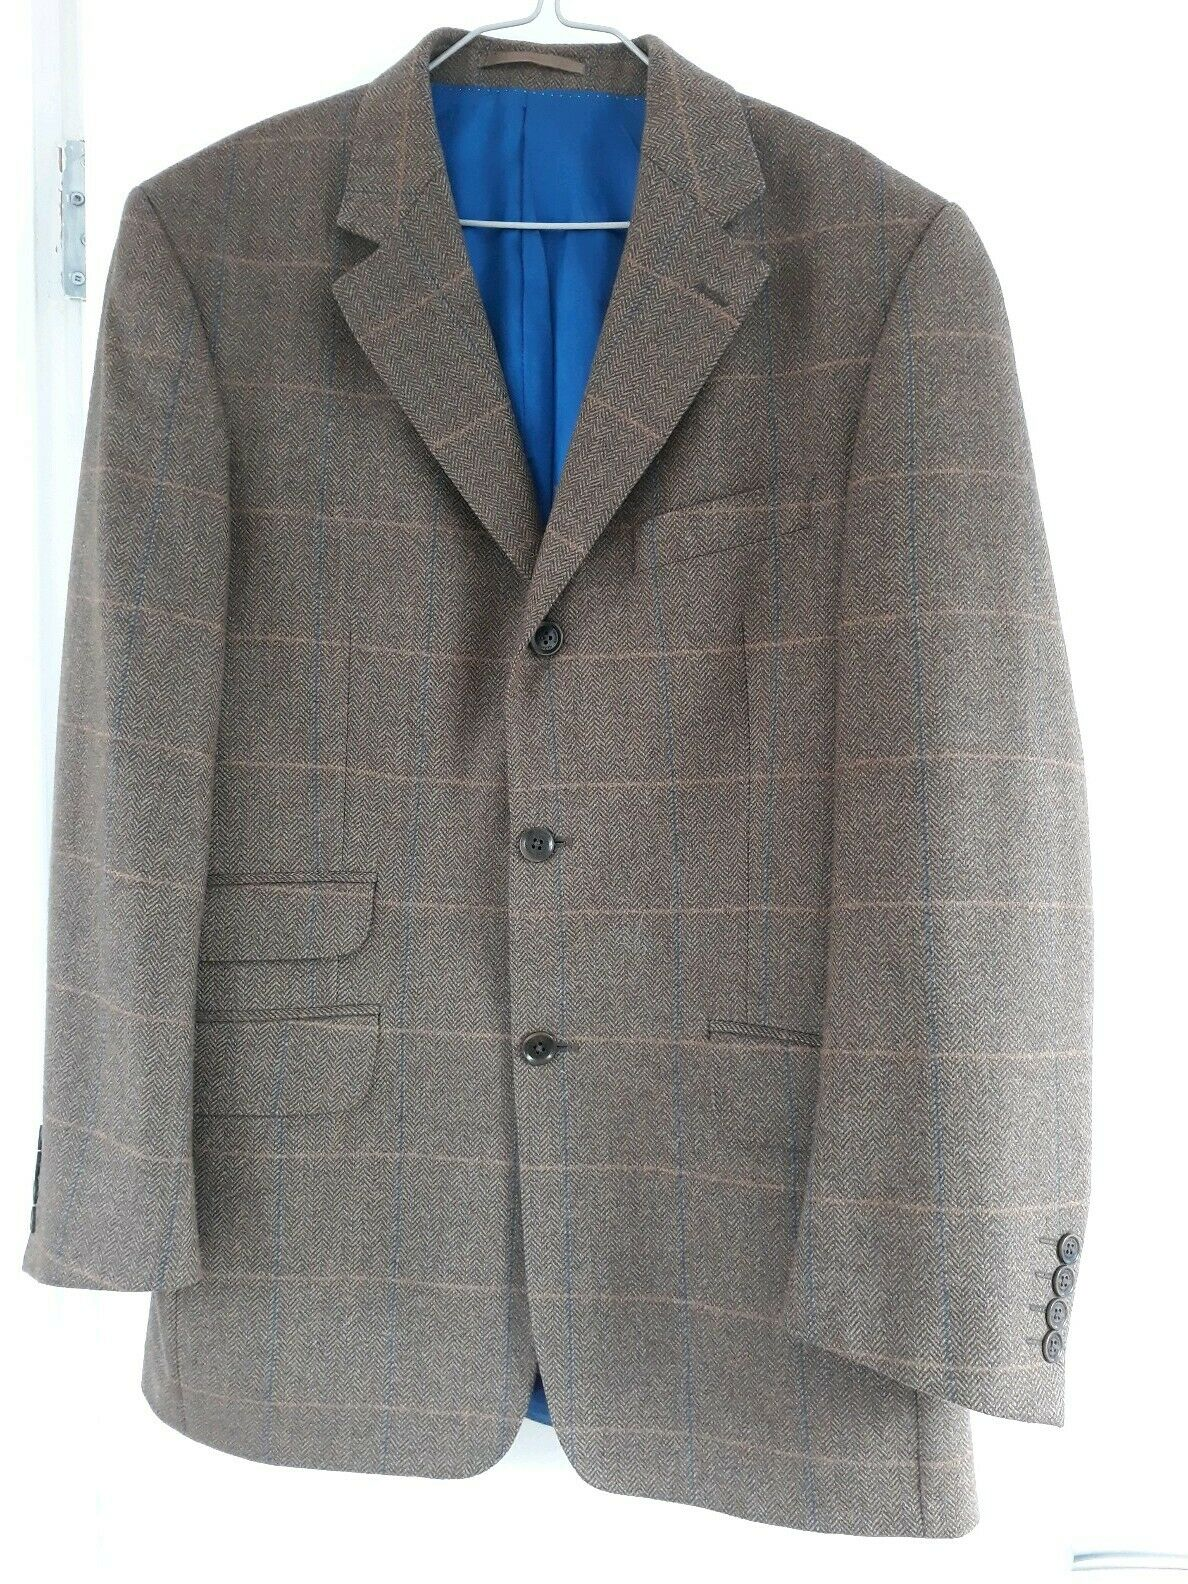 Racing Grün Italian Made Styled braun Cashmere Wool Checked Jacket -Mens 38 R